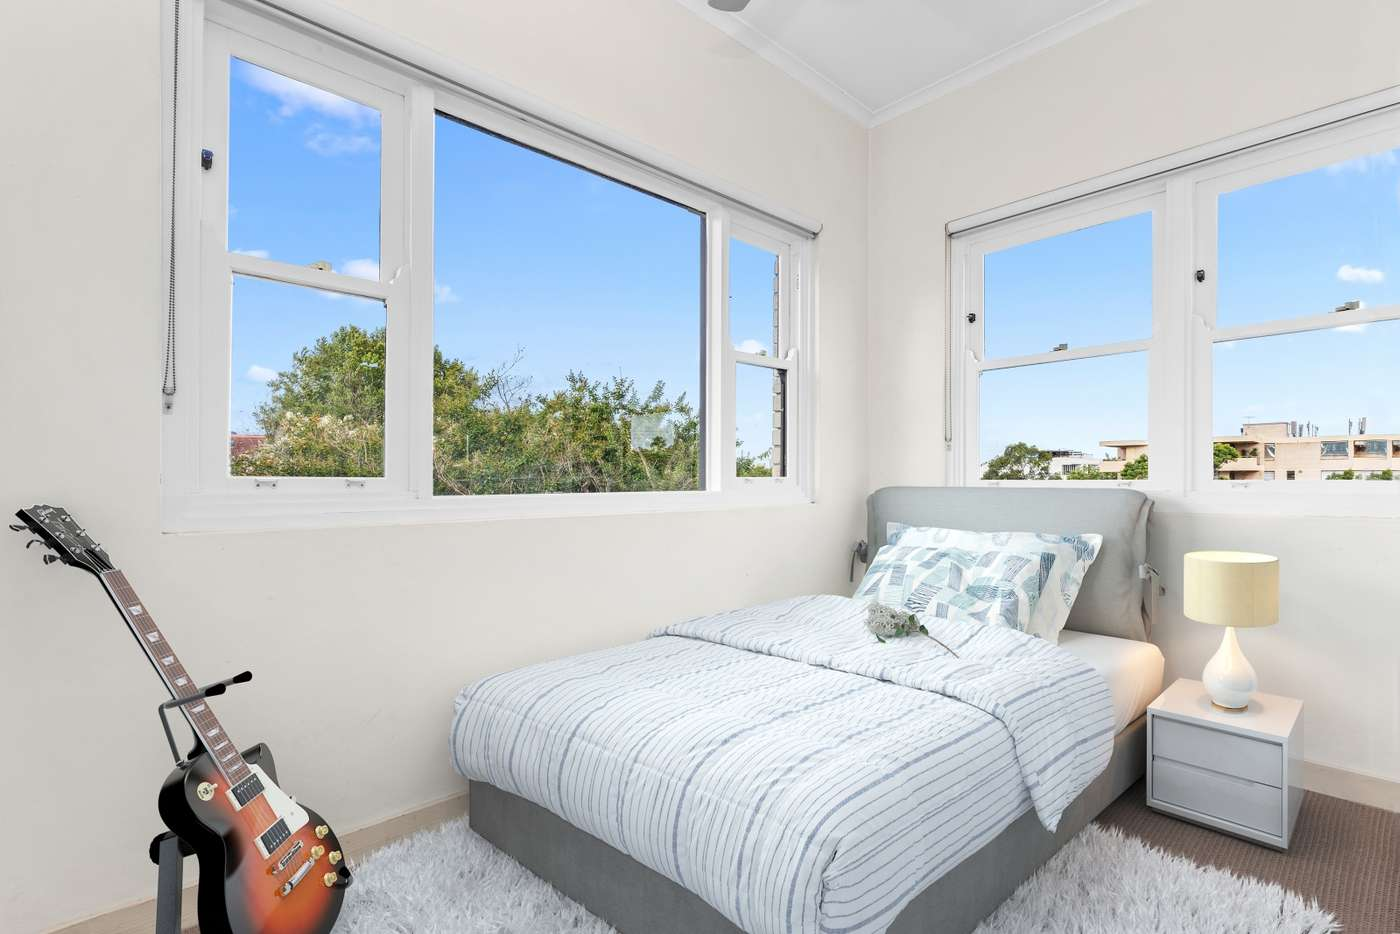 Sixth view of Homely apartment listing, 5/10A Yeo Street, Neutral Bay NSW 2089